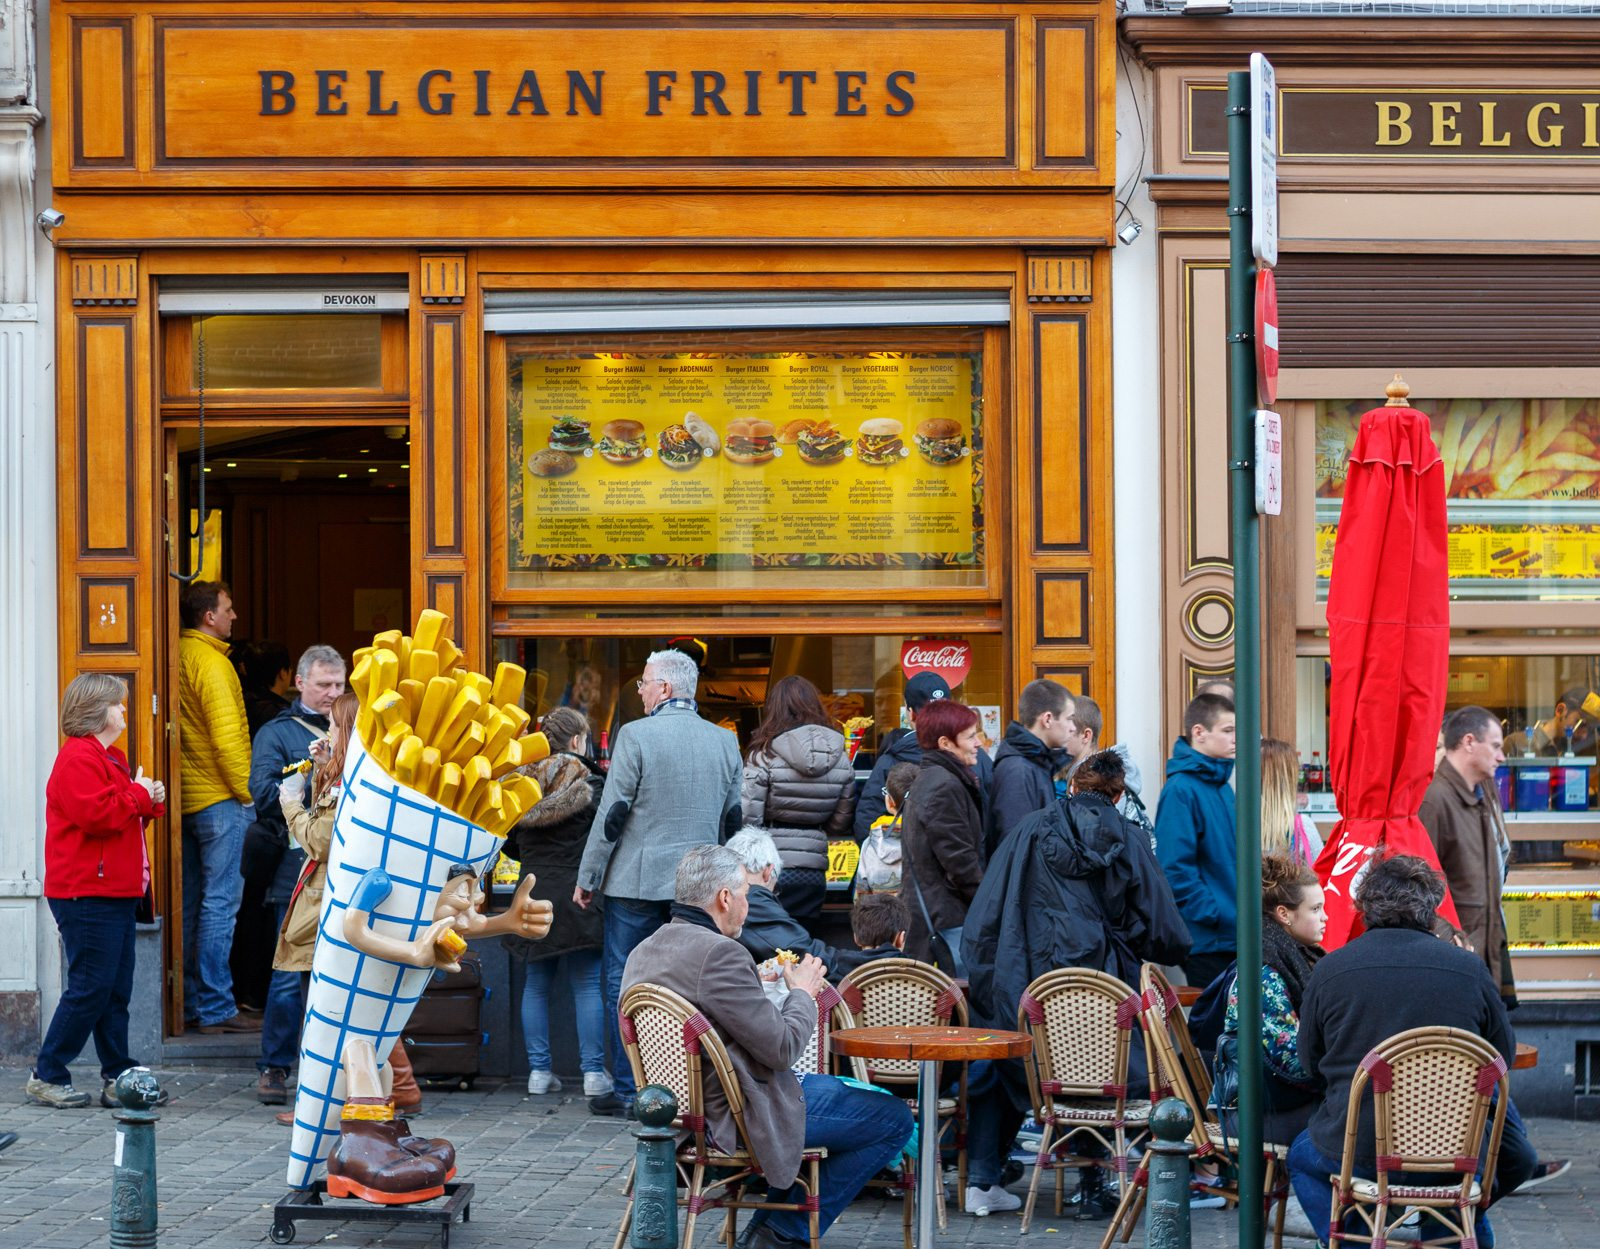 BELGIAN FRITES - Besides chocolate, Belgium is also known for it's frites (aka fries), unfortunately, we waiting in line for almost 10 minutes and did not move so we left..however if you get a chance try them out!